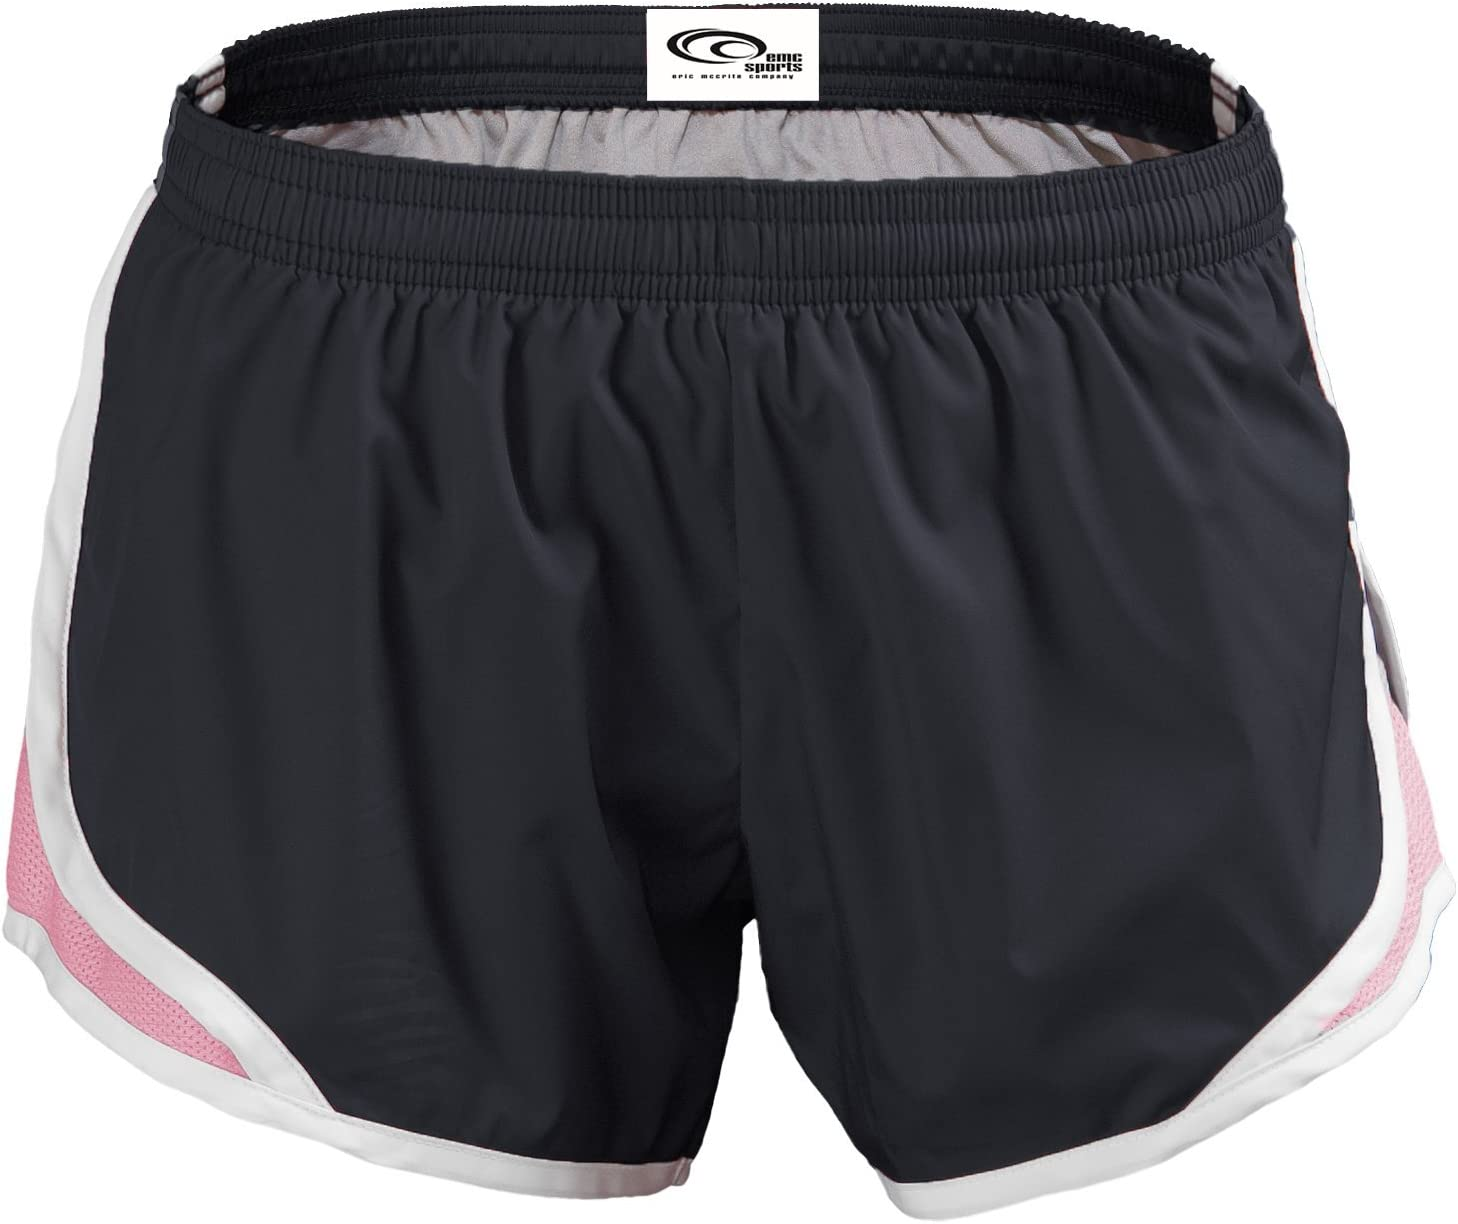 Momentum Junior Shorty Short Black//Silver-LARGE